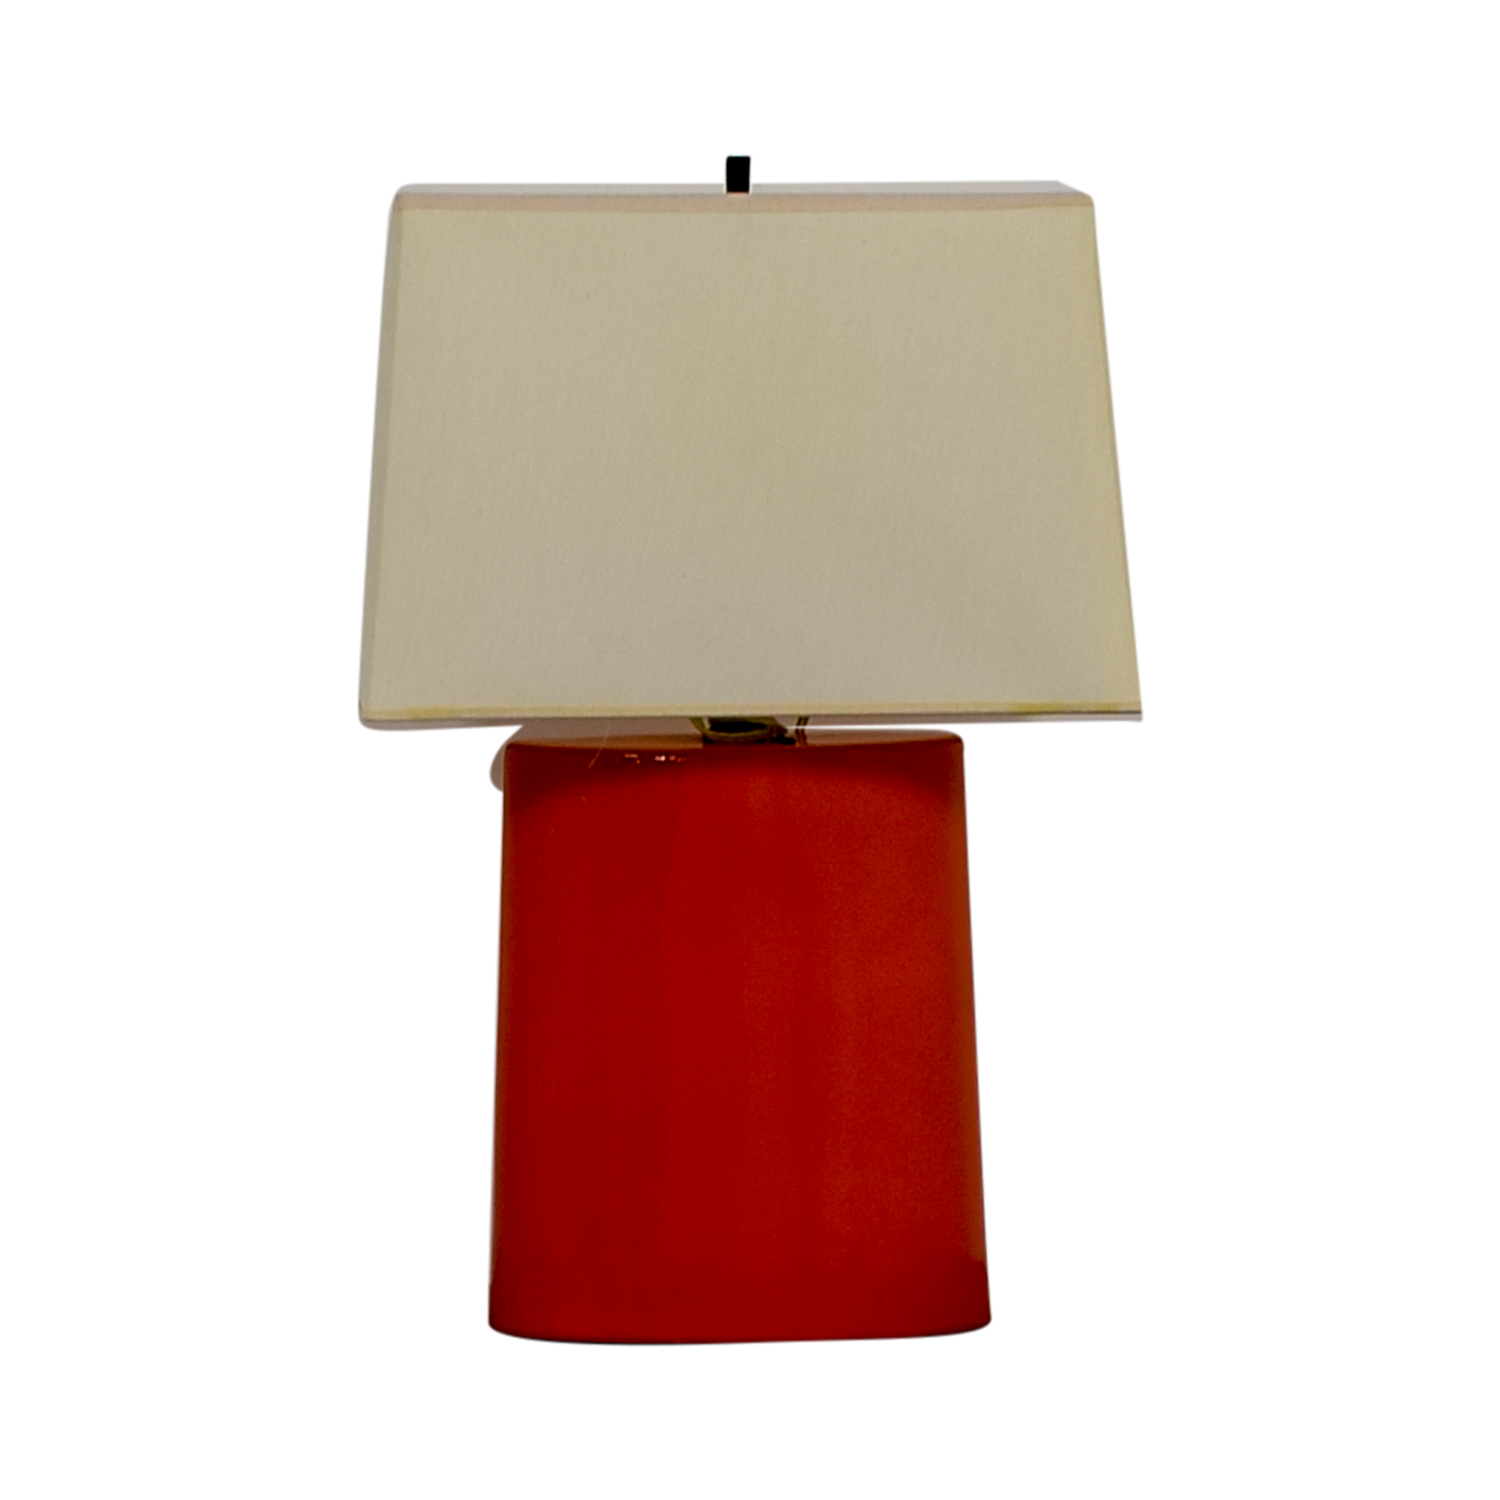 buy Crate & Barrel Boka Persimmon Table Lamp Crate & Barrel Lamps